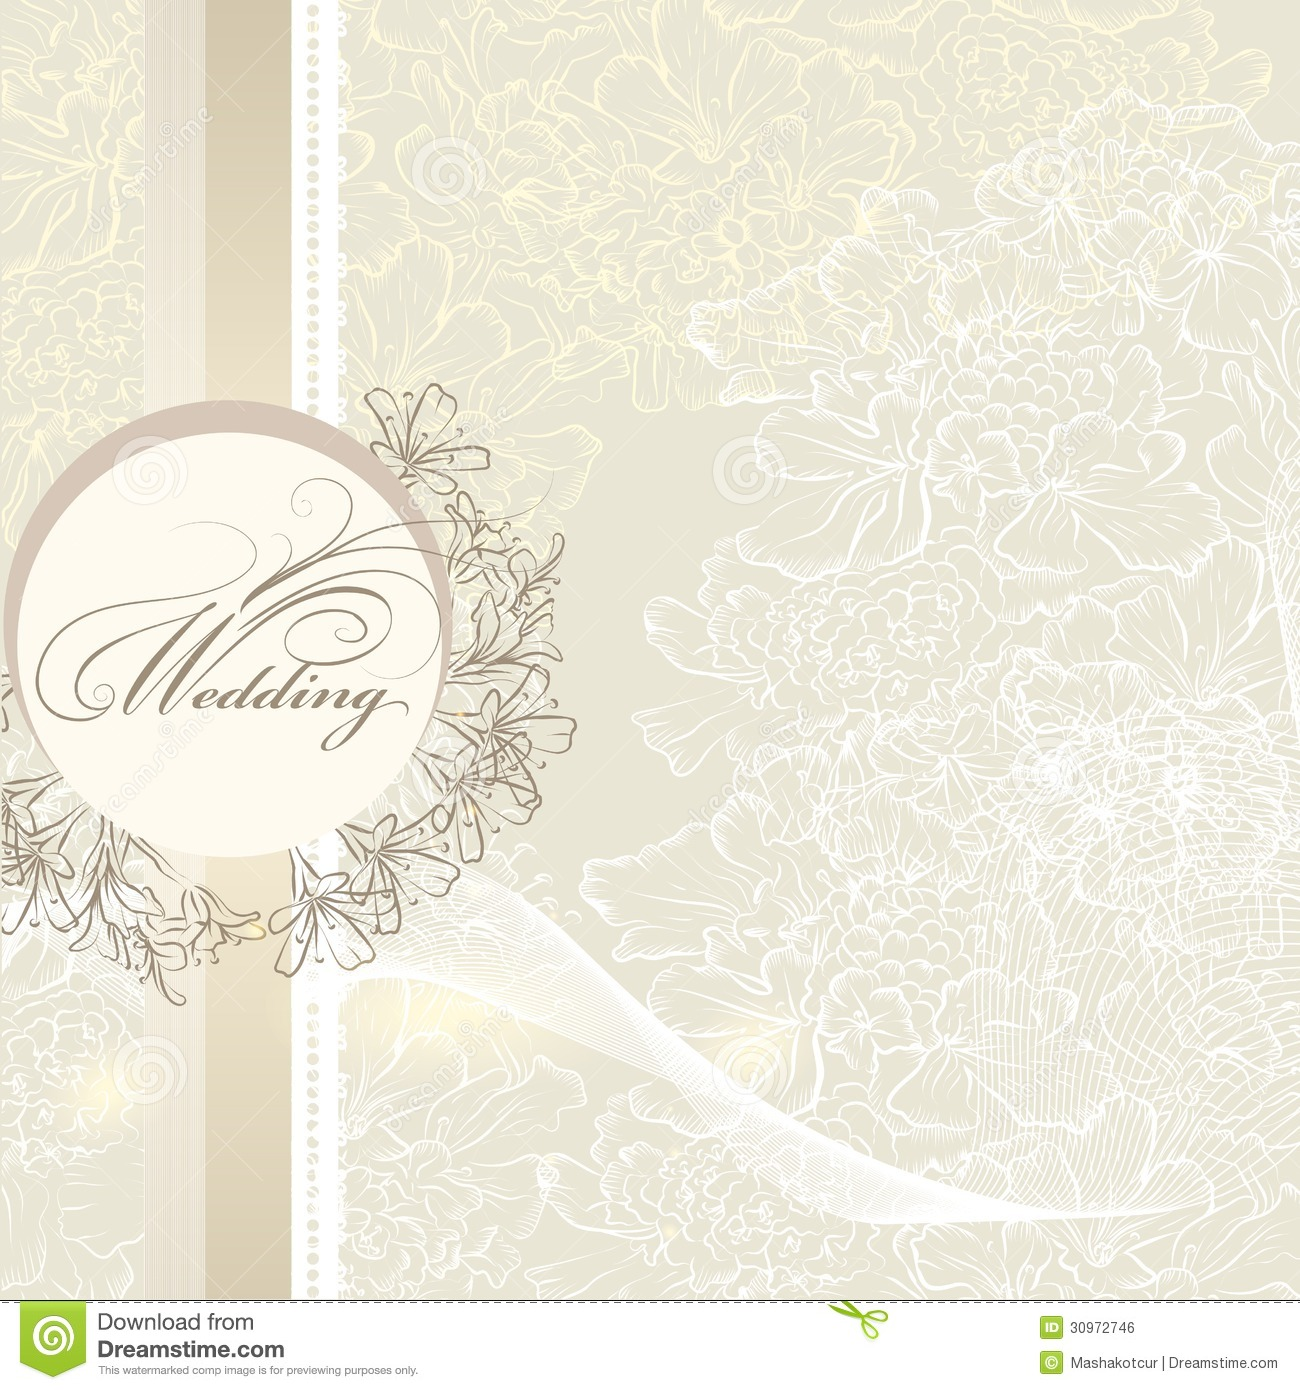 Wedding invitation vector illustration vector free download - Royalty Free Stock Photo Download Elegant Wedding Invitation Card